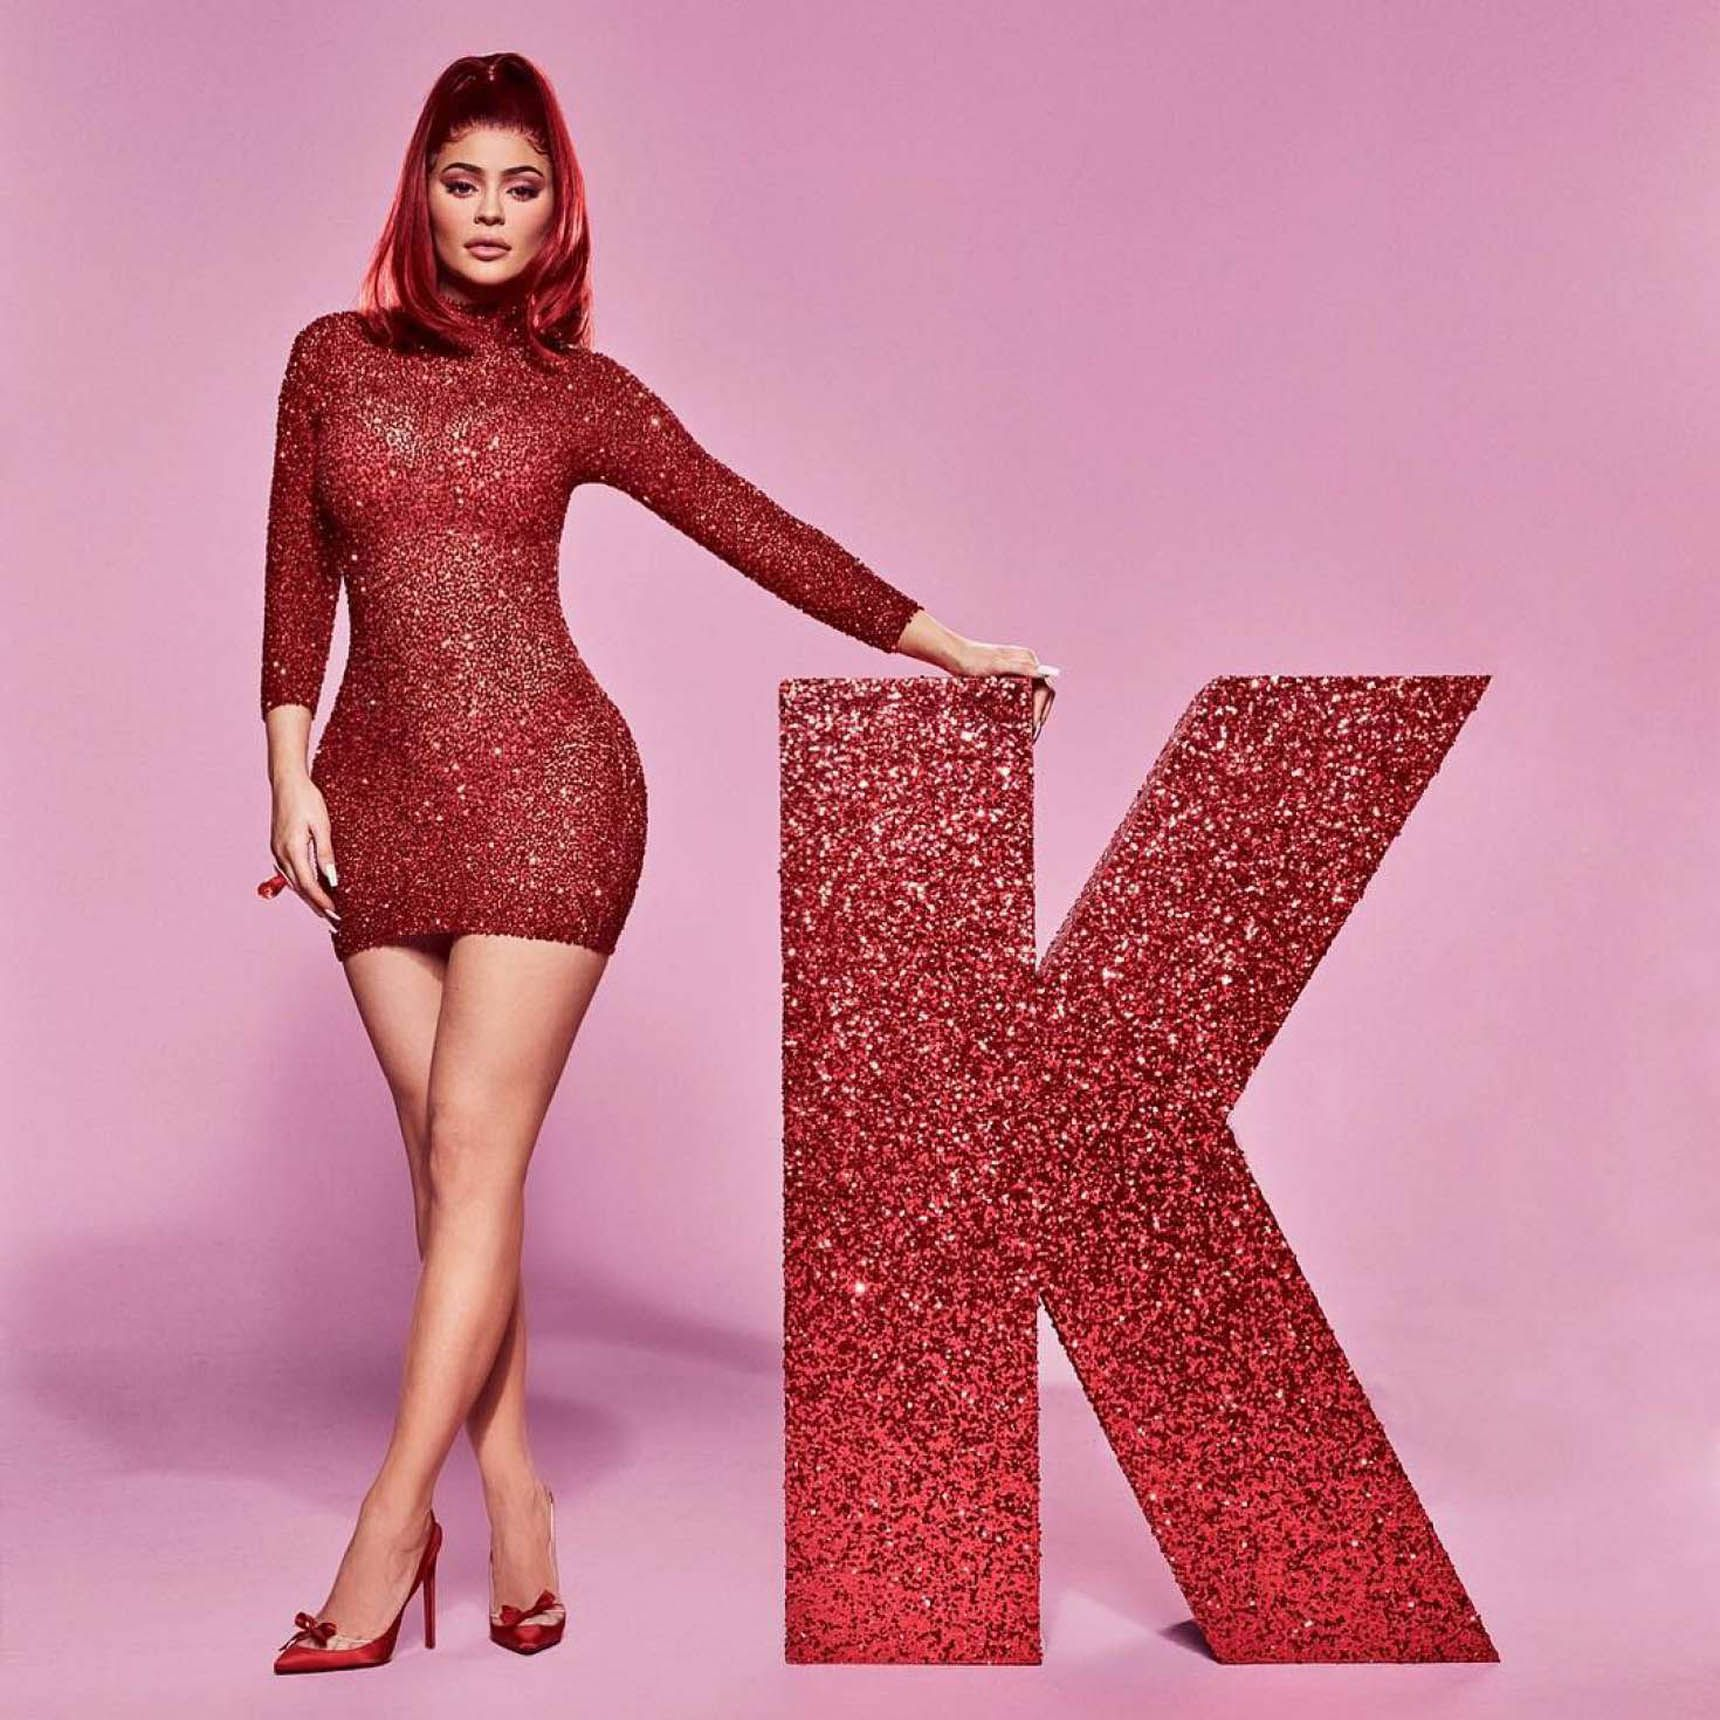 Kylie Jenner latex dress. 2018-2019 celebrityes photos leaks! new photo